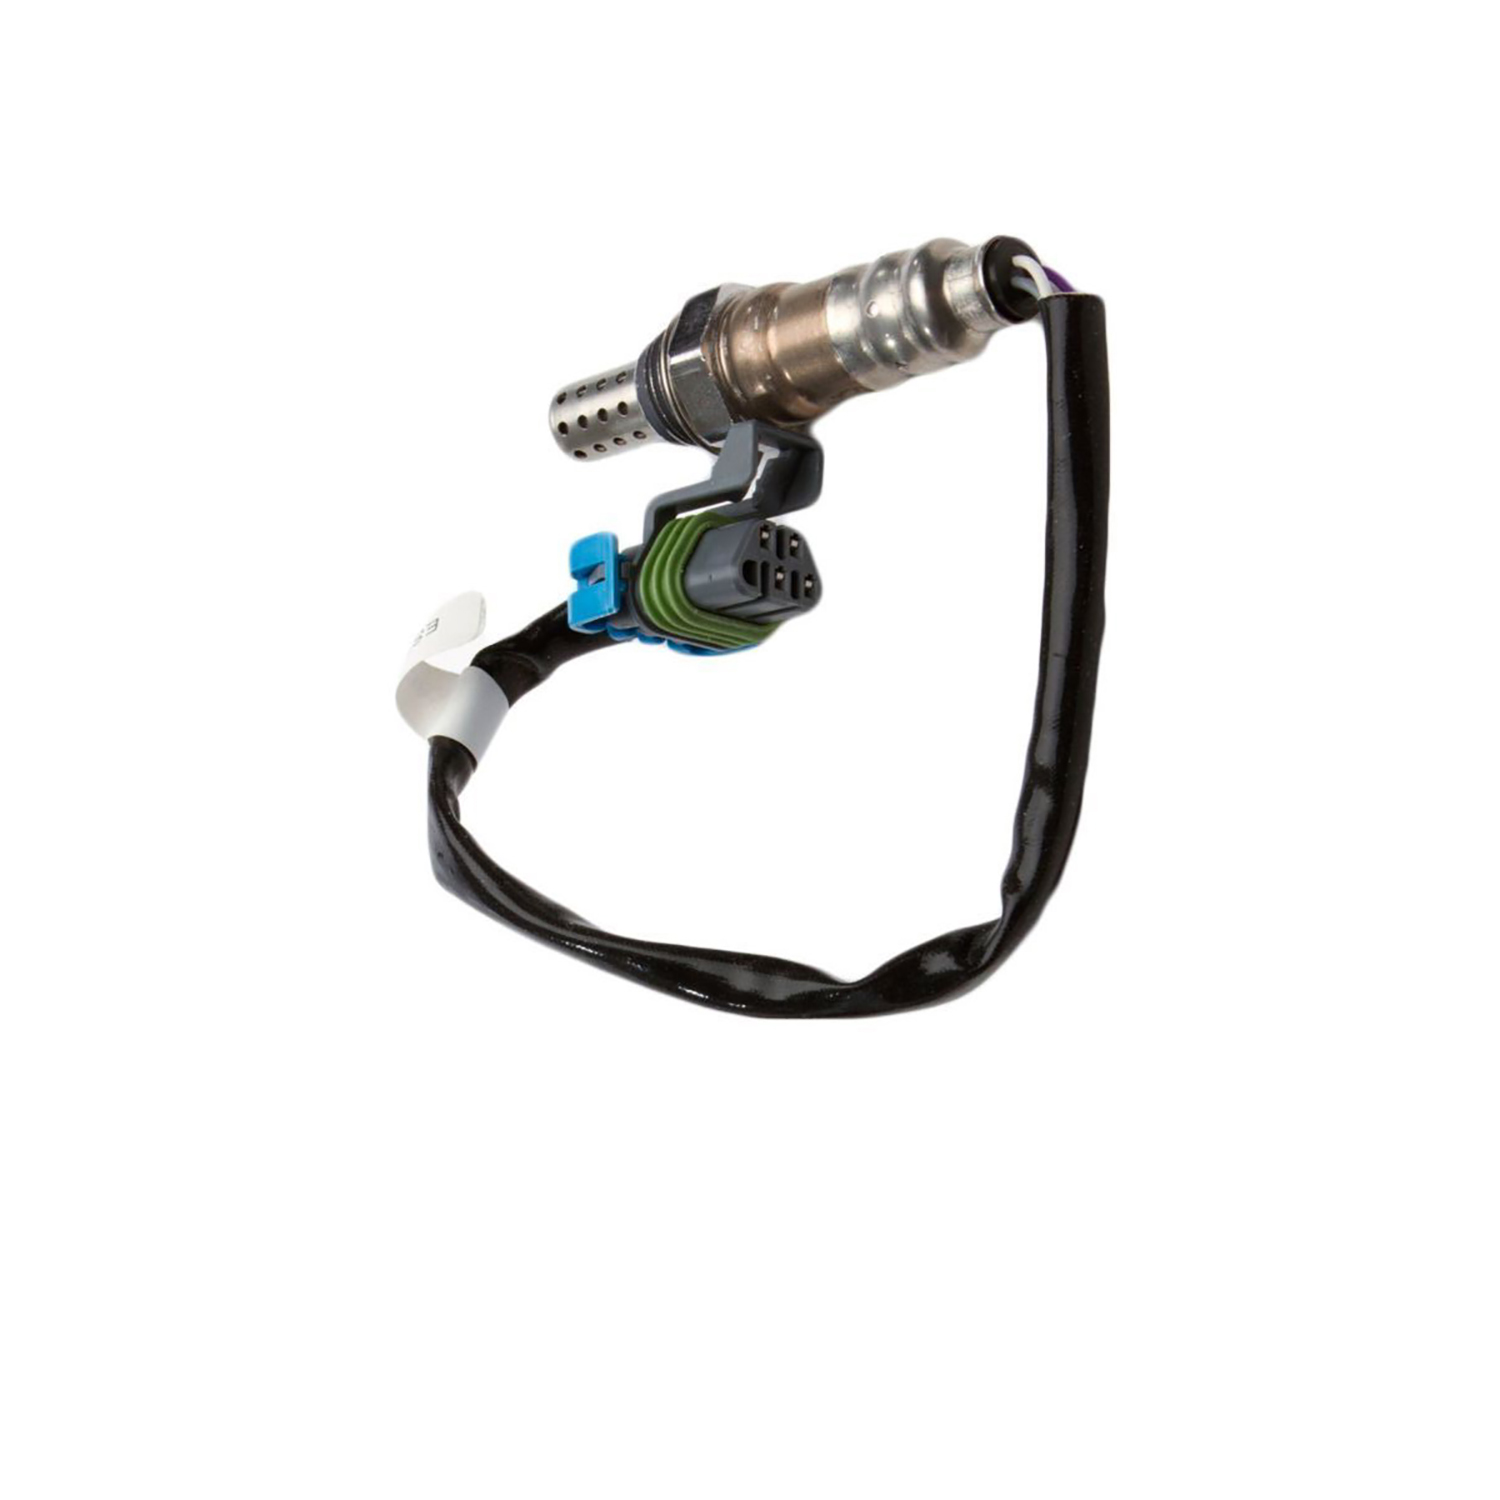 Downstream O2 Oxygen Sensor For Chevy Trailblazer Gmc